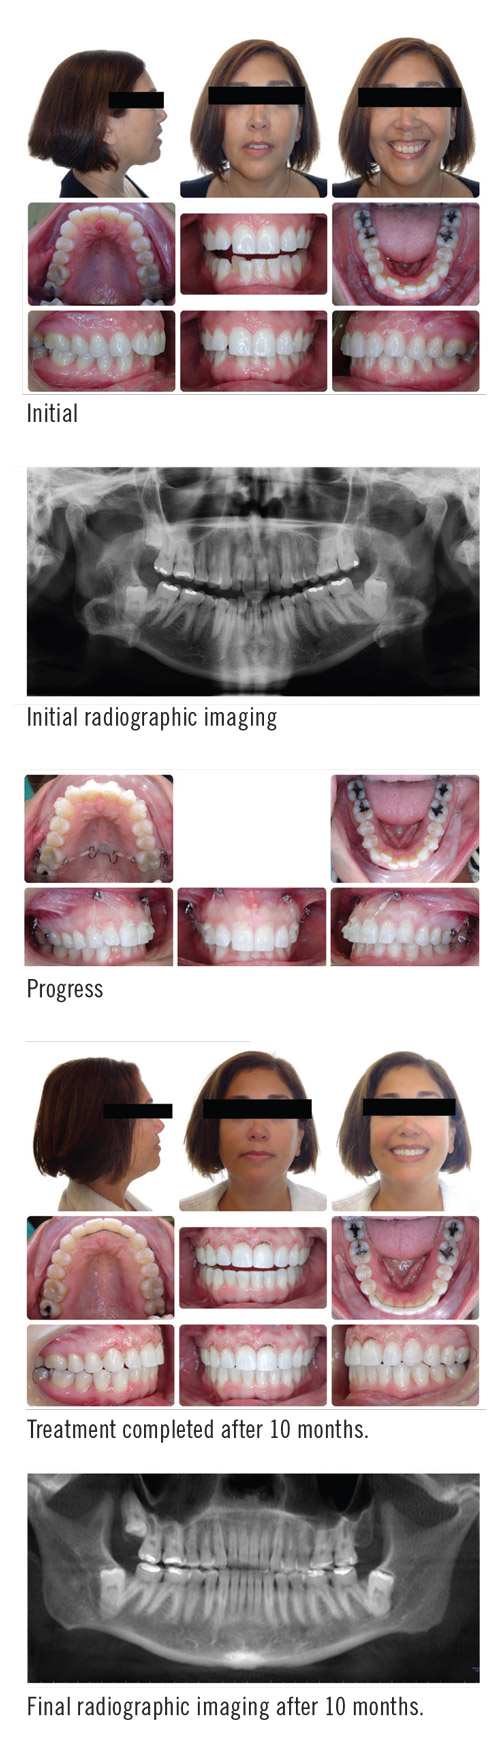 Maxillary Impaction with Aligners, TADs, and Low Pulsatile